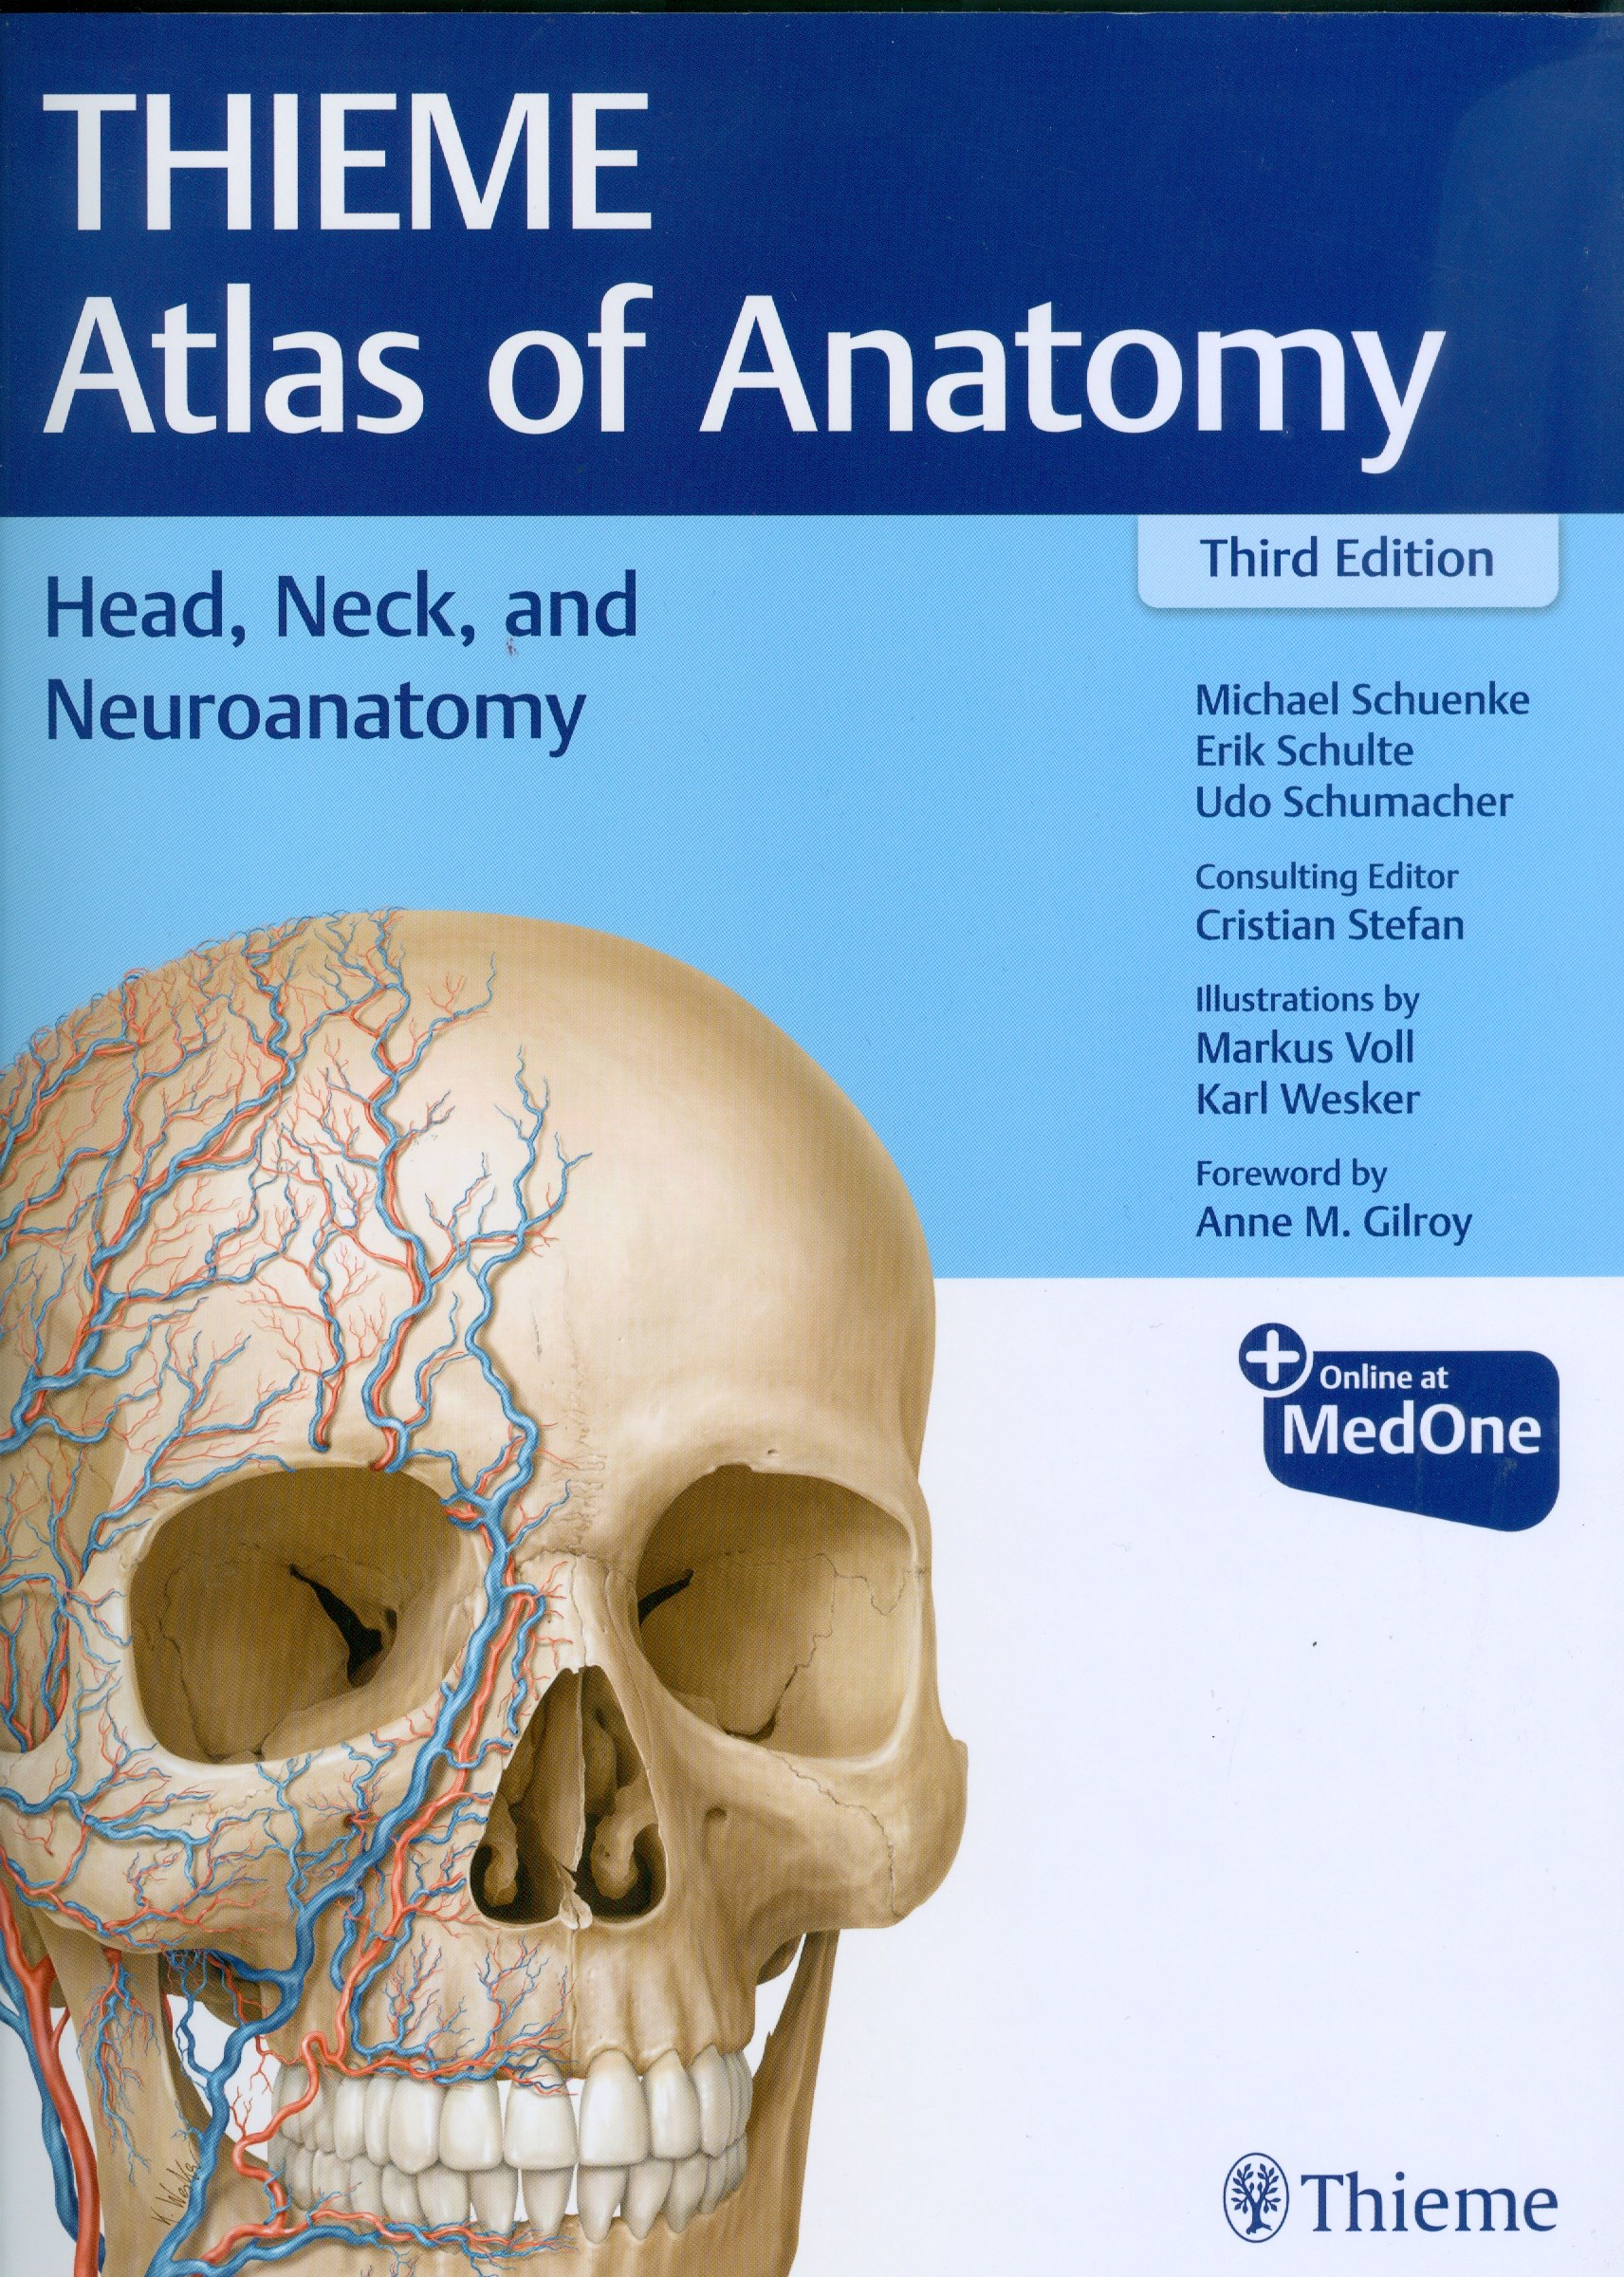 Atlas of Anatomy: Head, Neck, and Neuroanatomy, 3rd edn